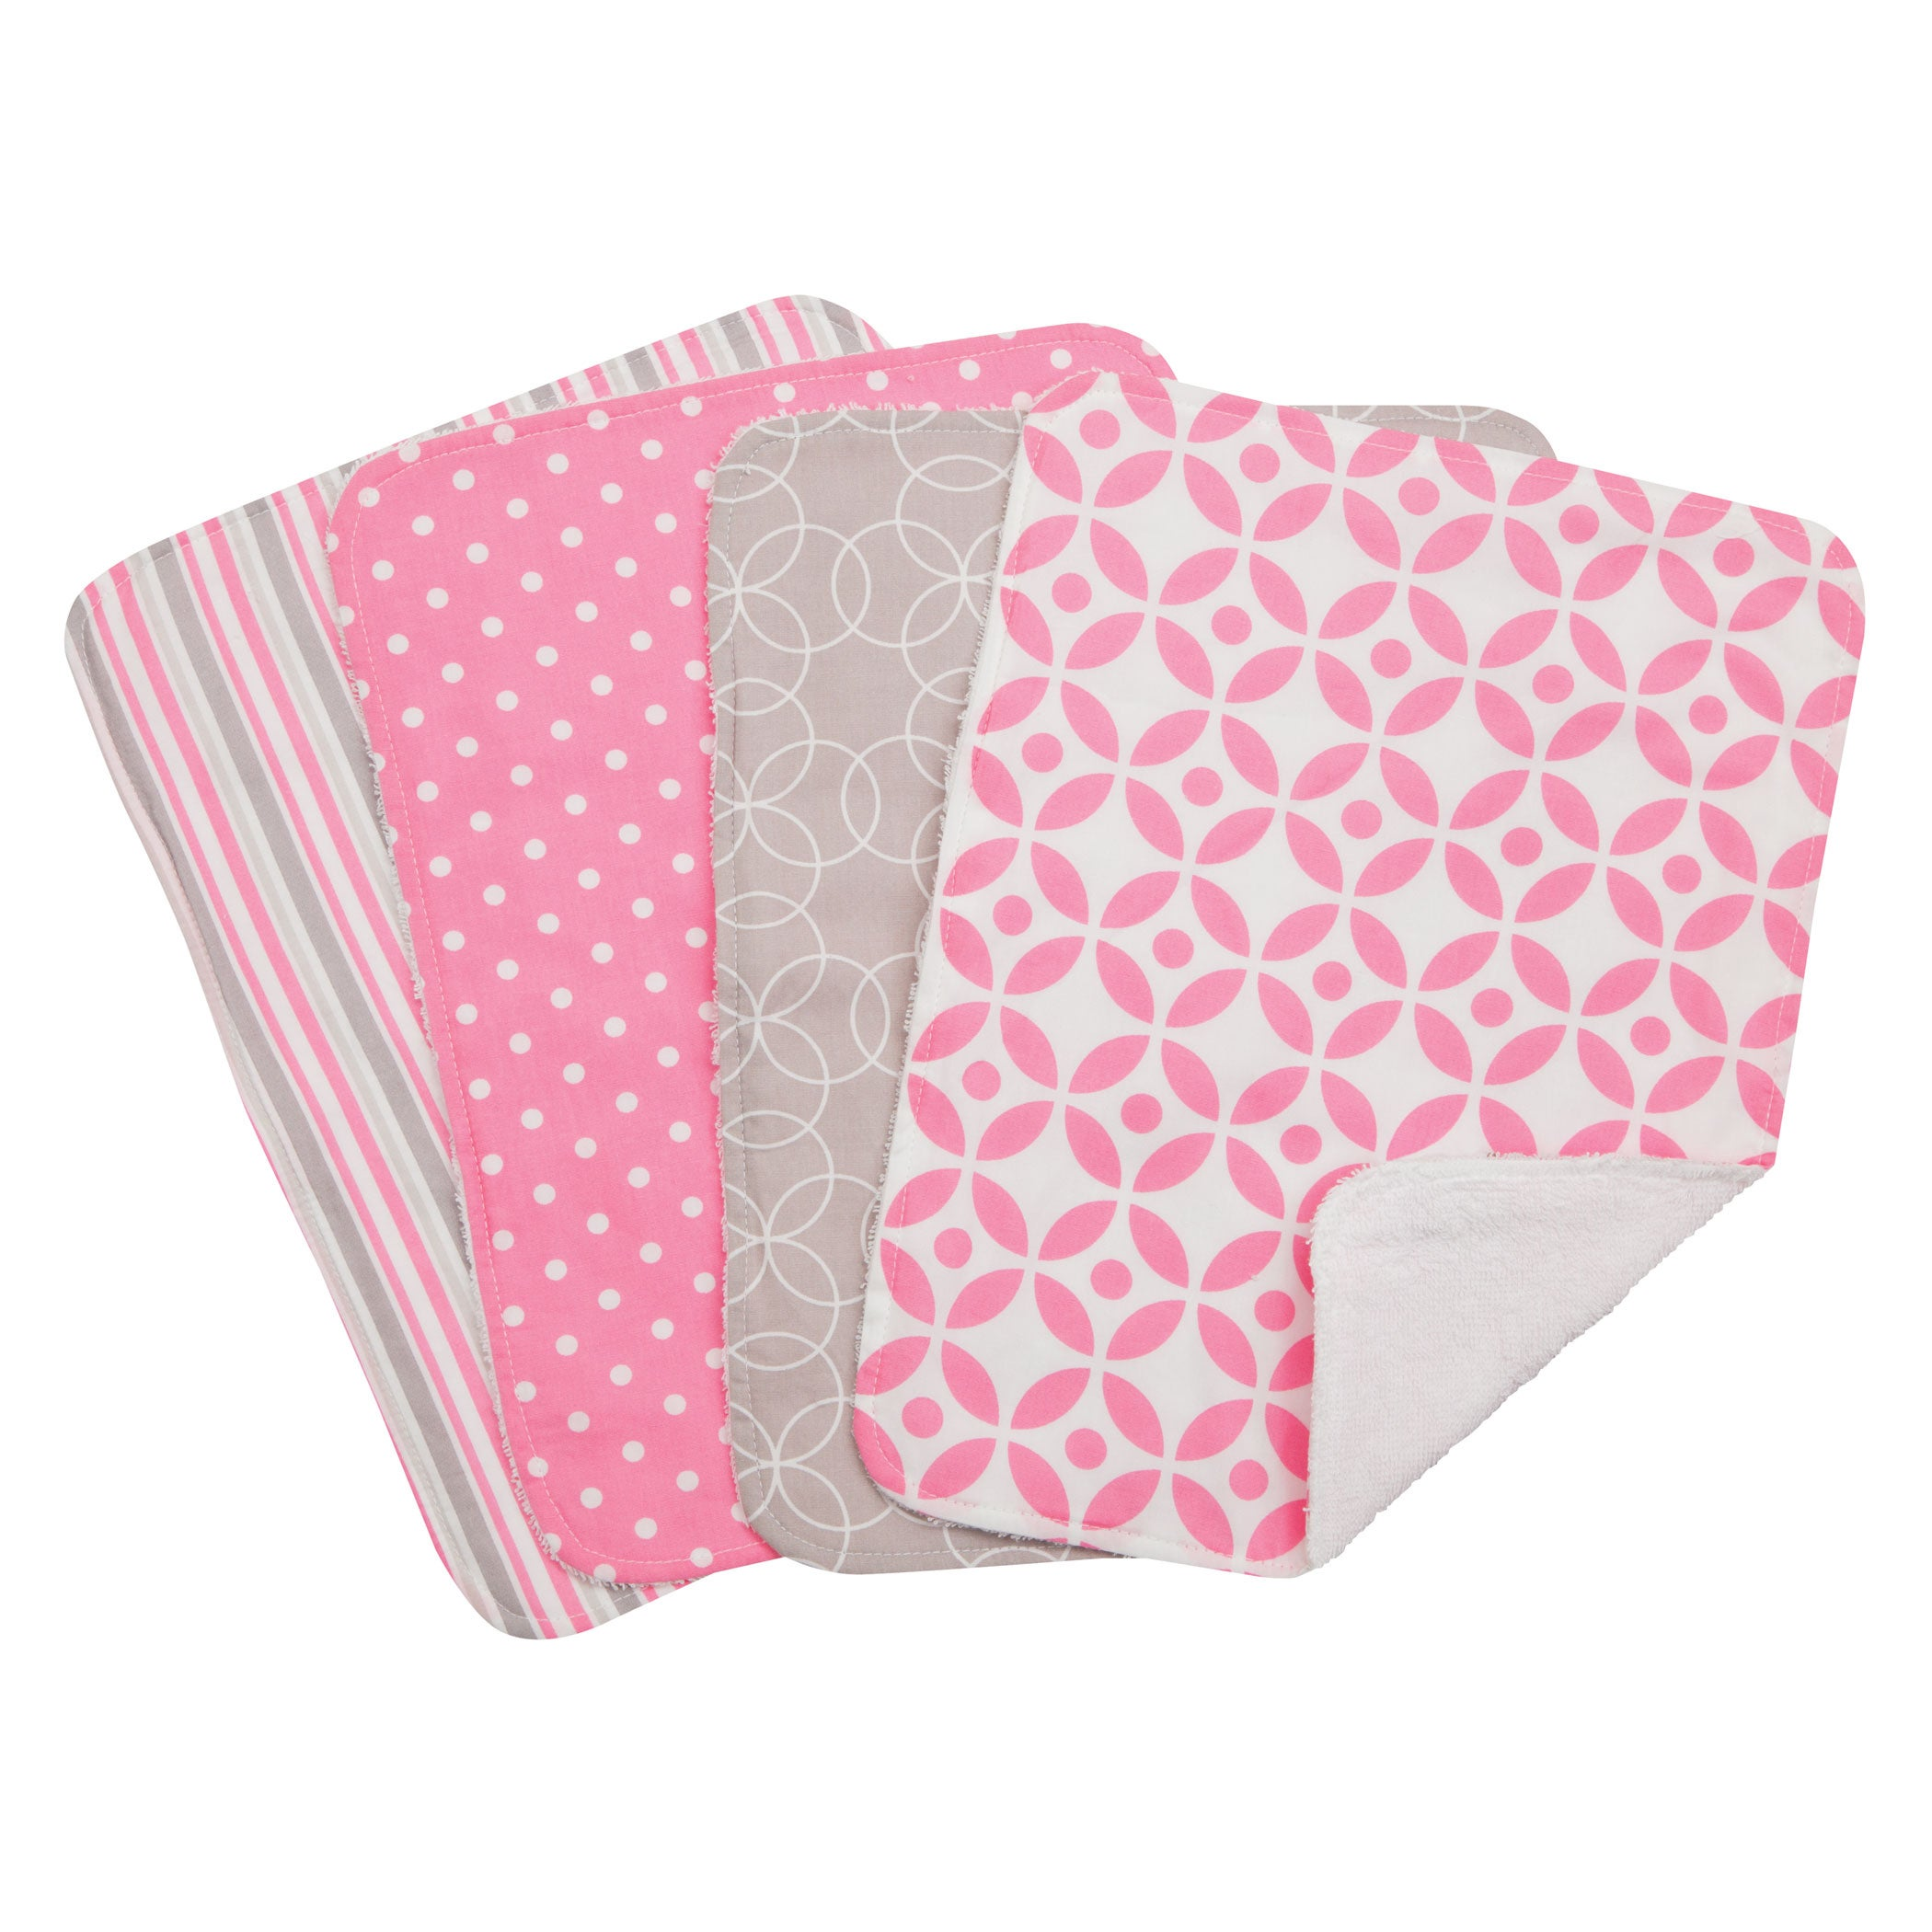 Trend Lab 5-piece Nursing Cover and Burp Cloth Set in Lil...